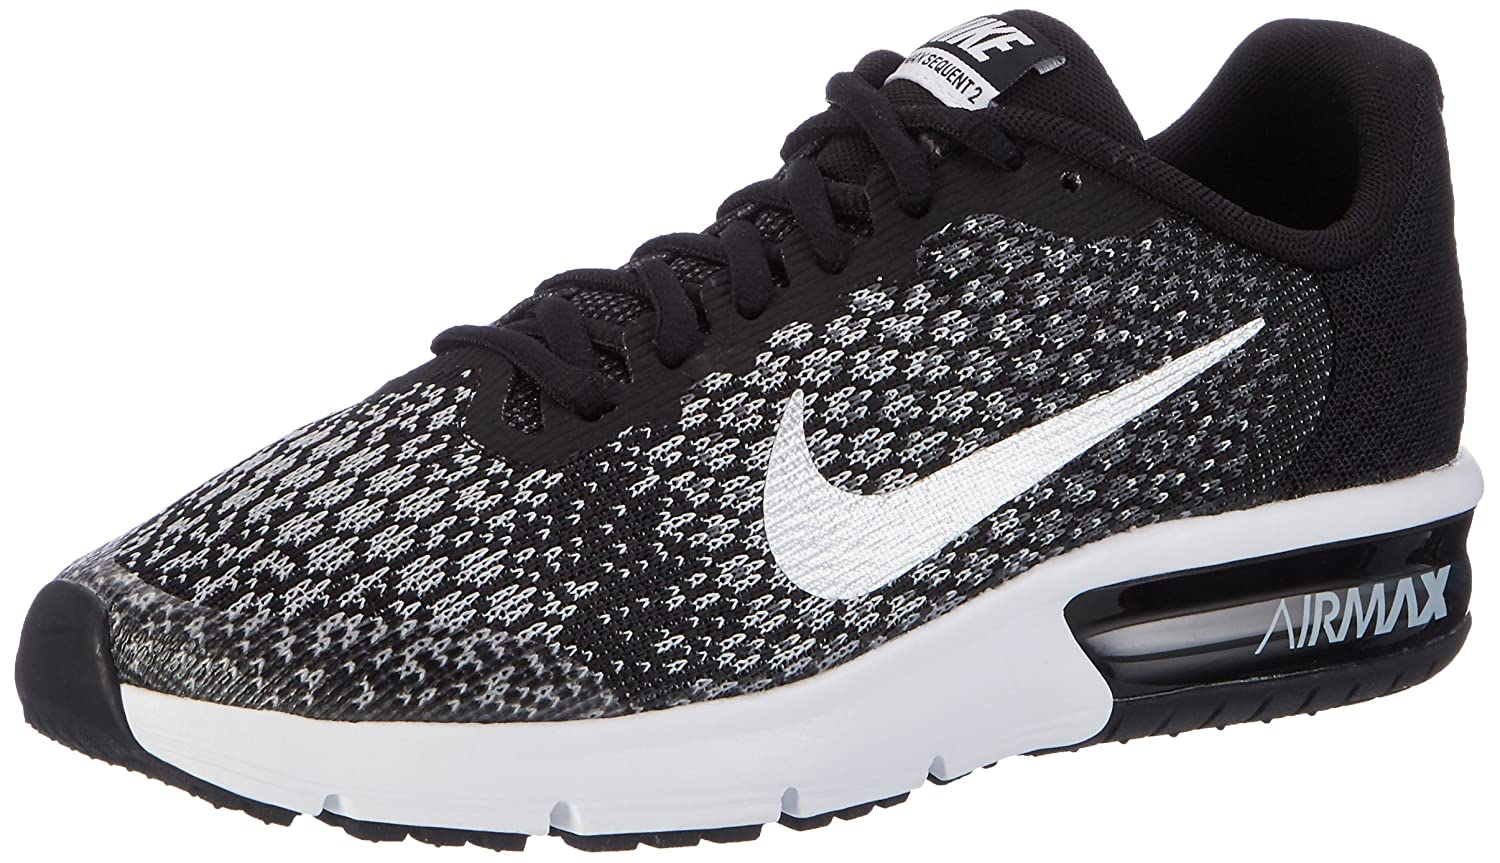 Nike Air Max Sequent 2 (GS), Zapatillas de Trail Running para Hombre 38 EU|Multicolor (Black/Metallic Silver/Dark Grey 001)